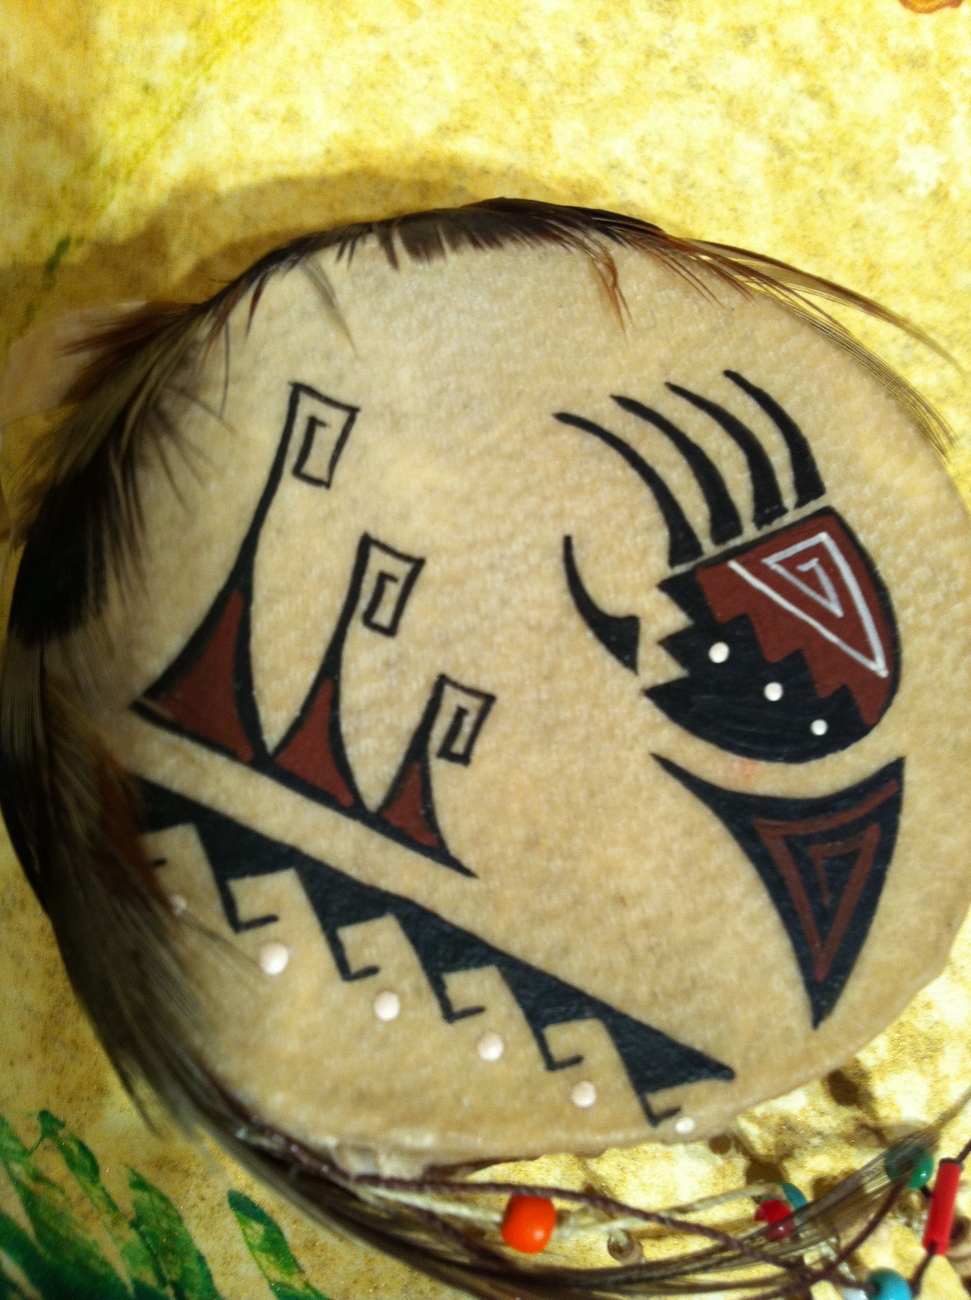 Miniature Drum depicting the Northern Lights